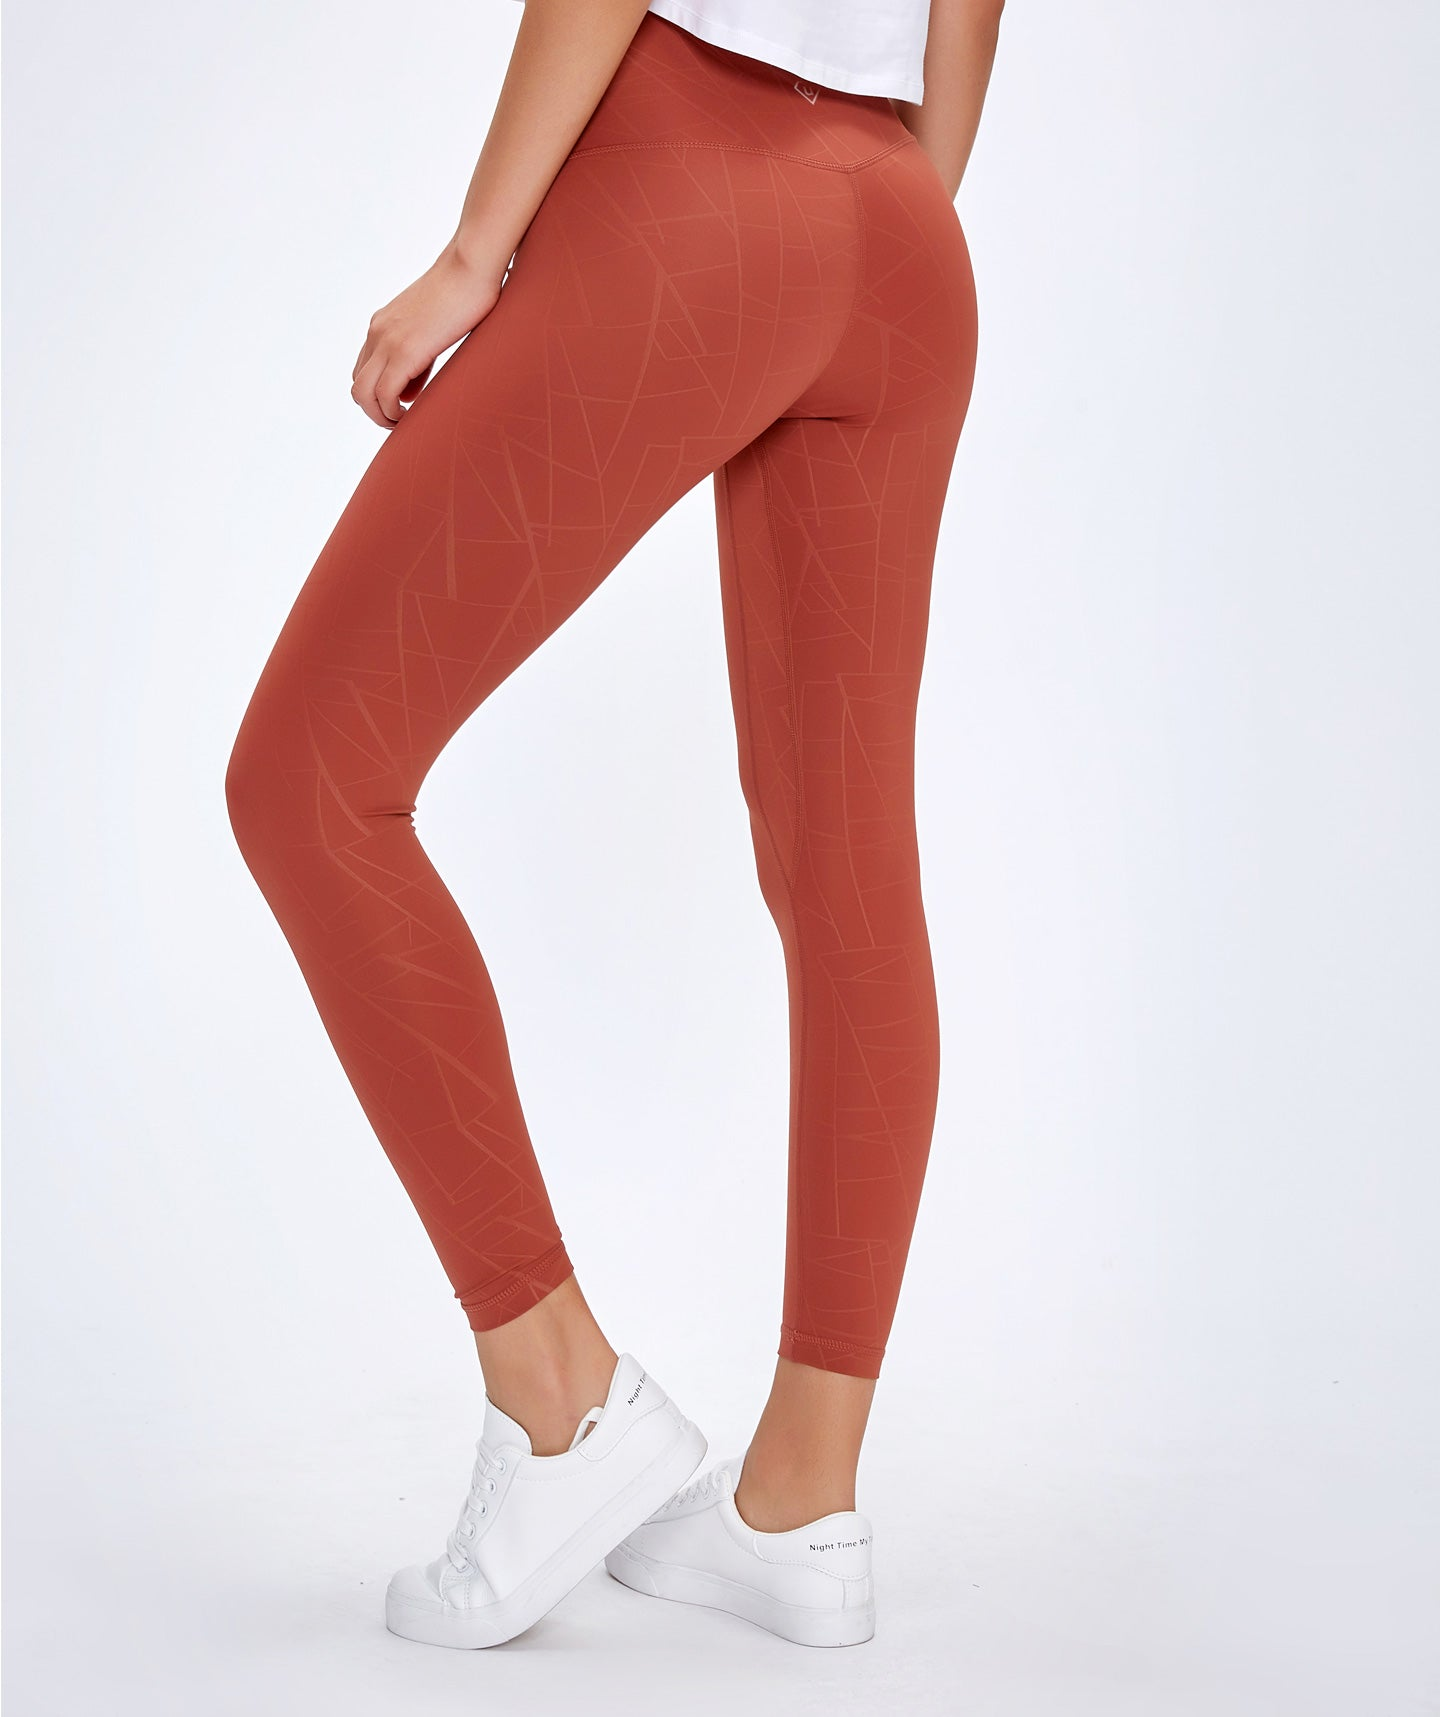 Energy Tangerine Leggings